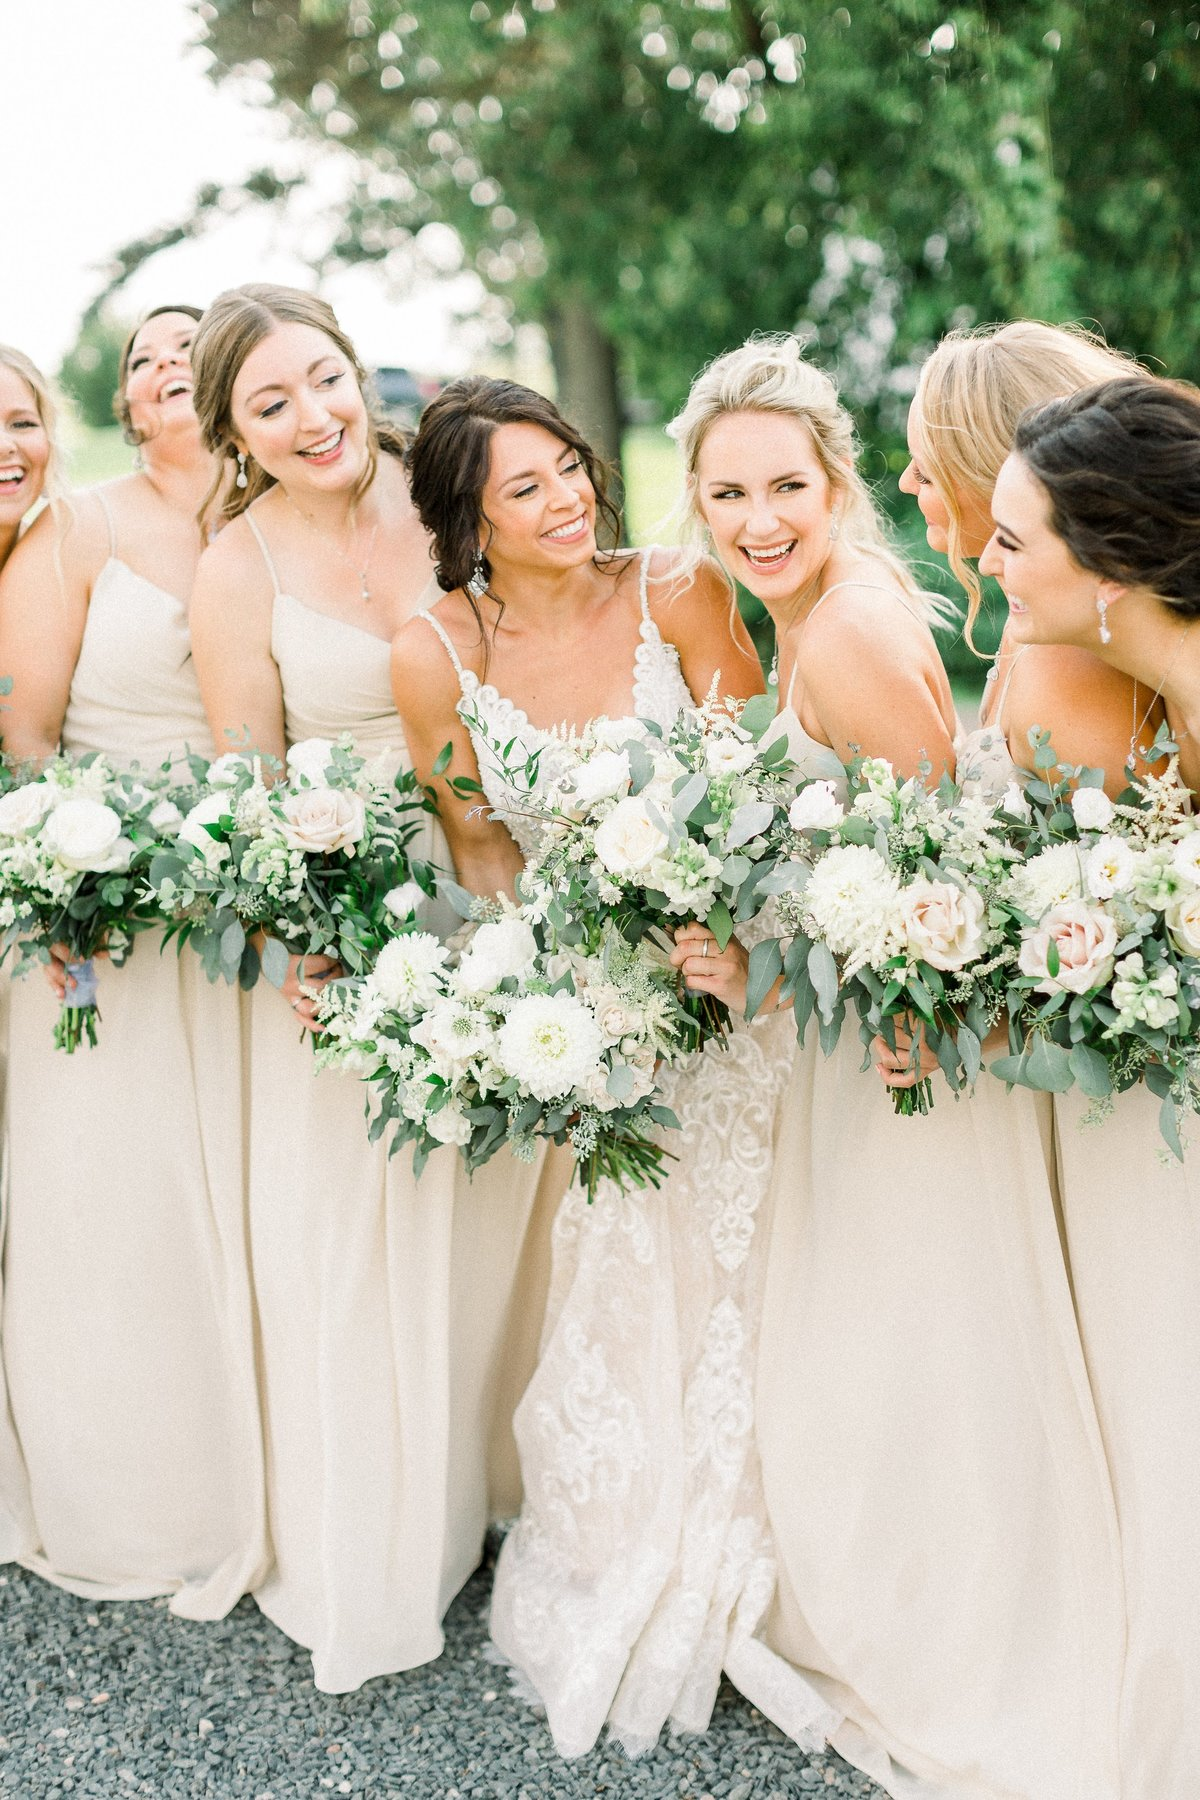 Kristy_+_Derek_-_Bridal_Party-1834